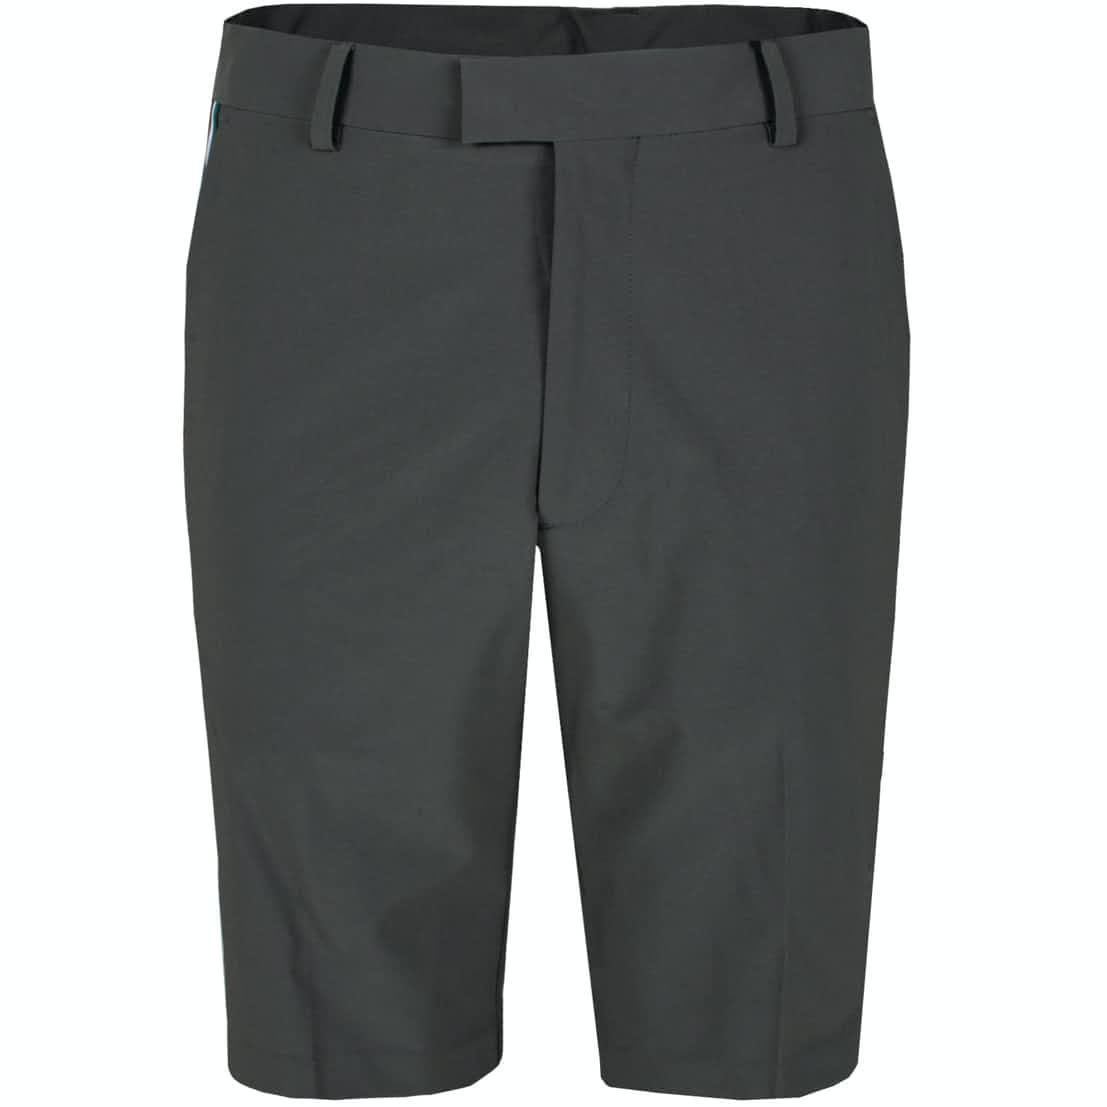 Hybrid Shorts Charcoal - AW19